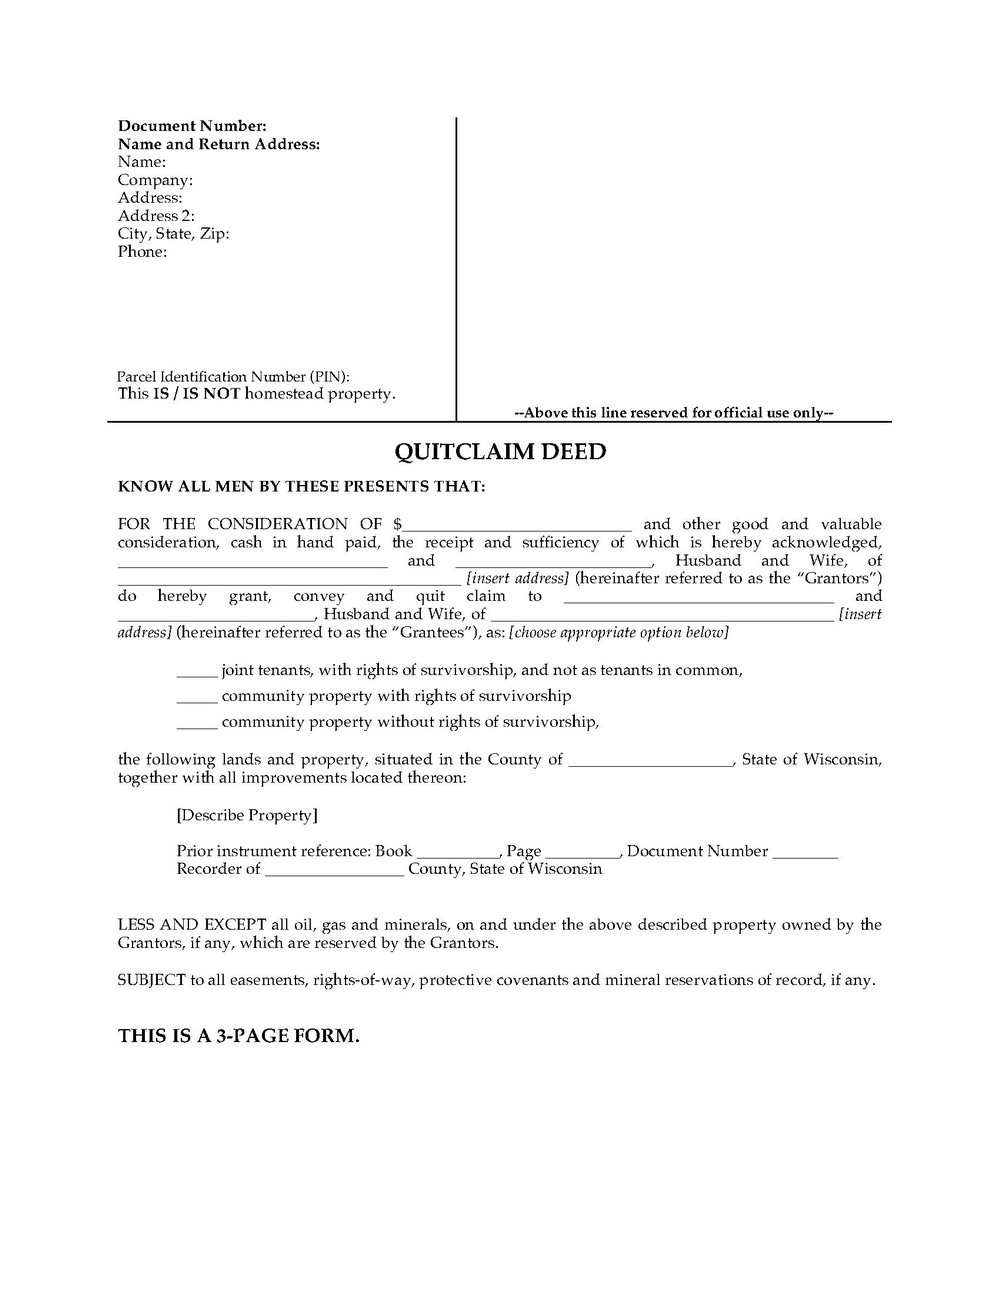 Michigan Quit Claim Deed Form